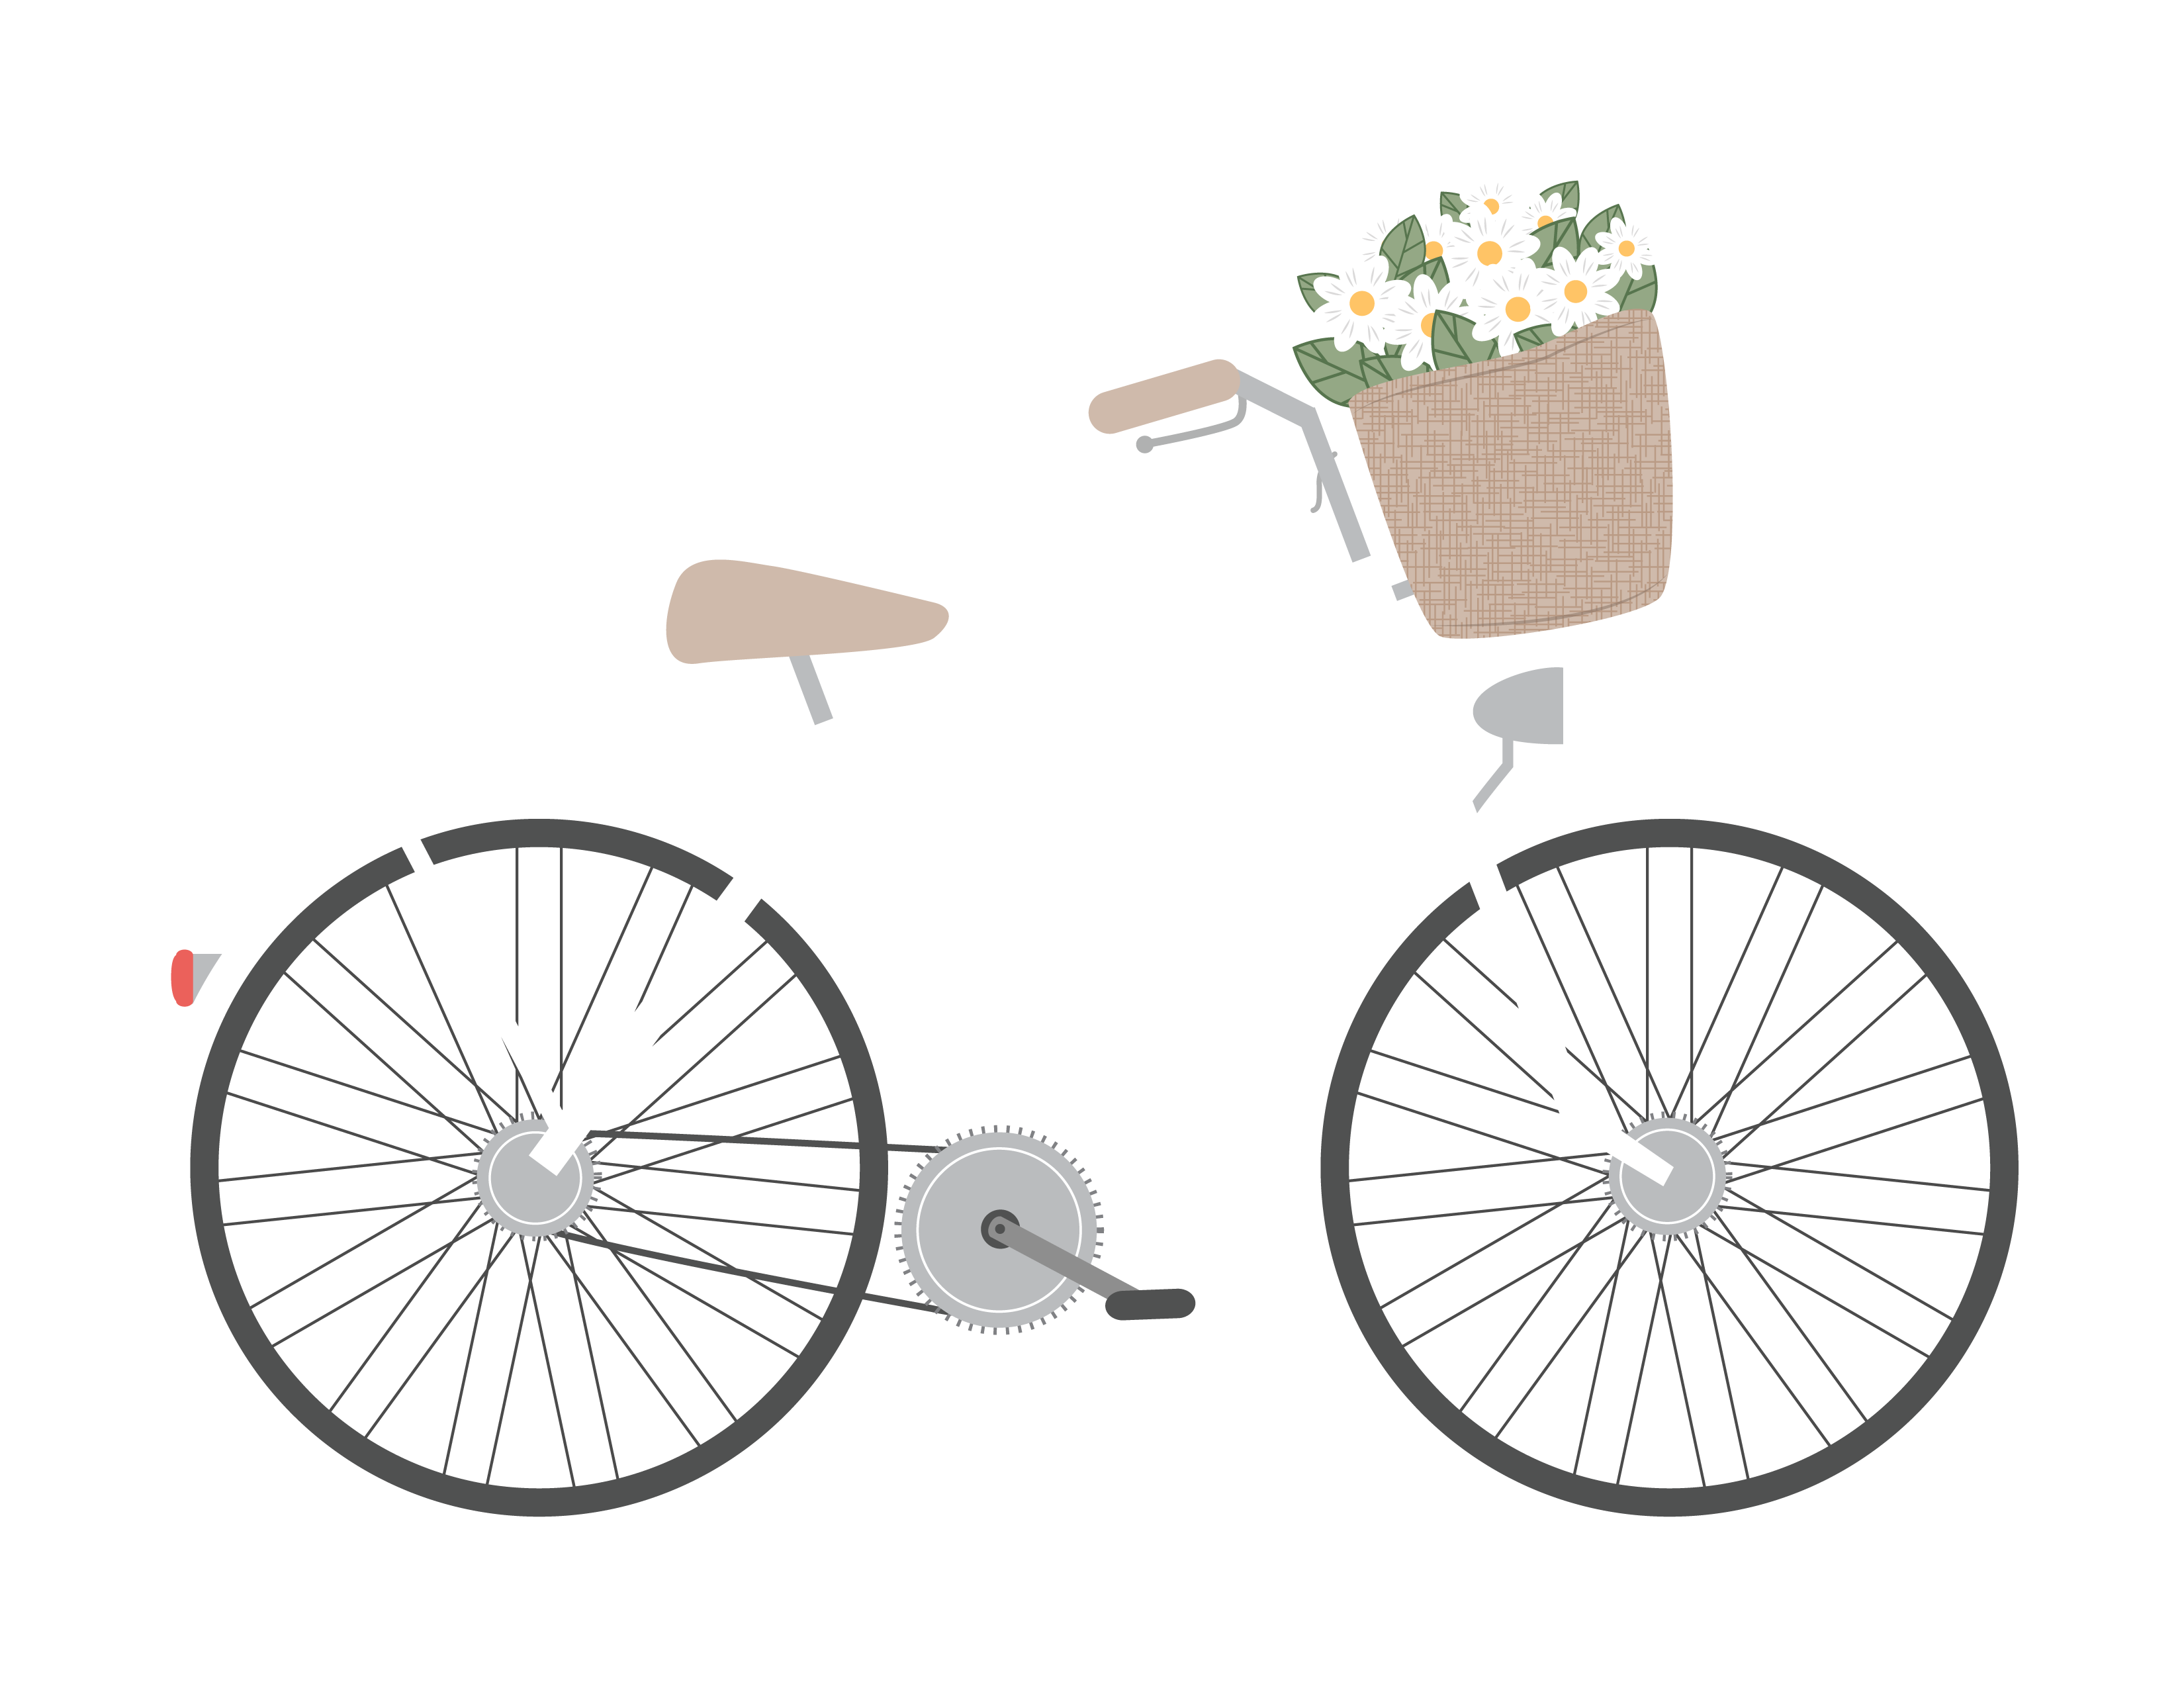 clip stock Bicycle clipart non living thing. Cycling bike free on.